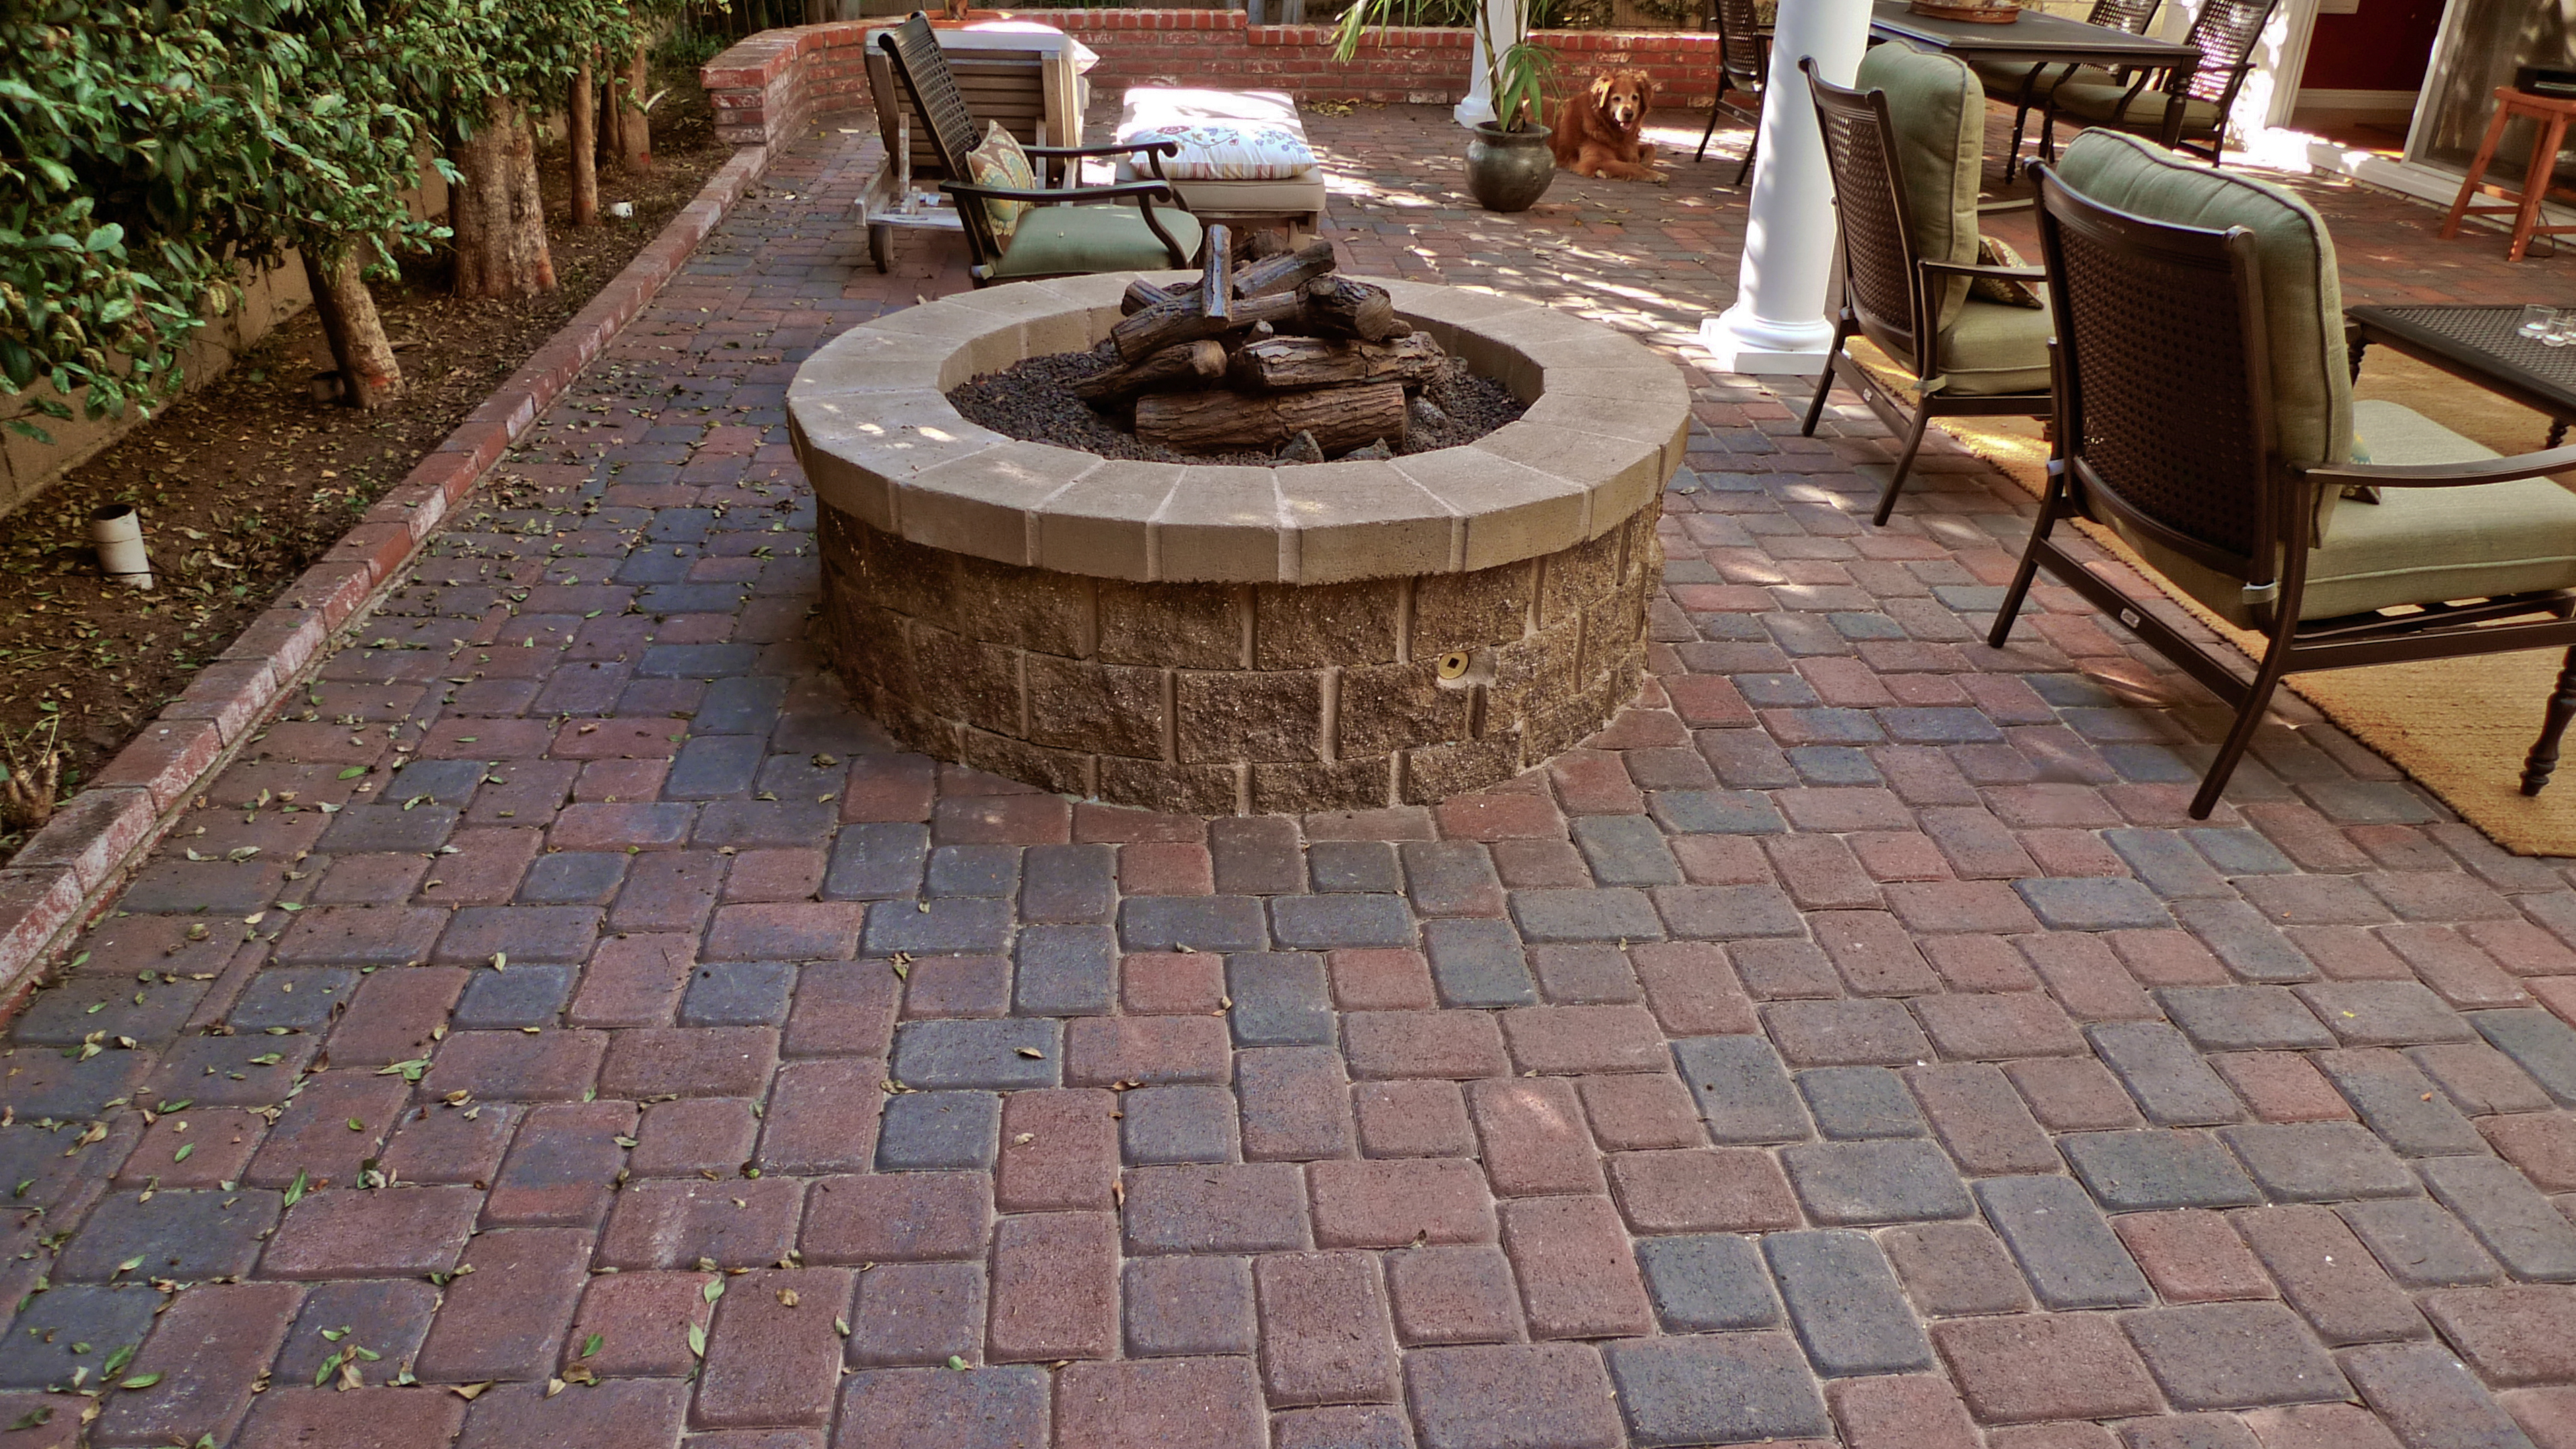 Compact Tustin Paving Stones patio paving stones